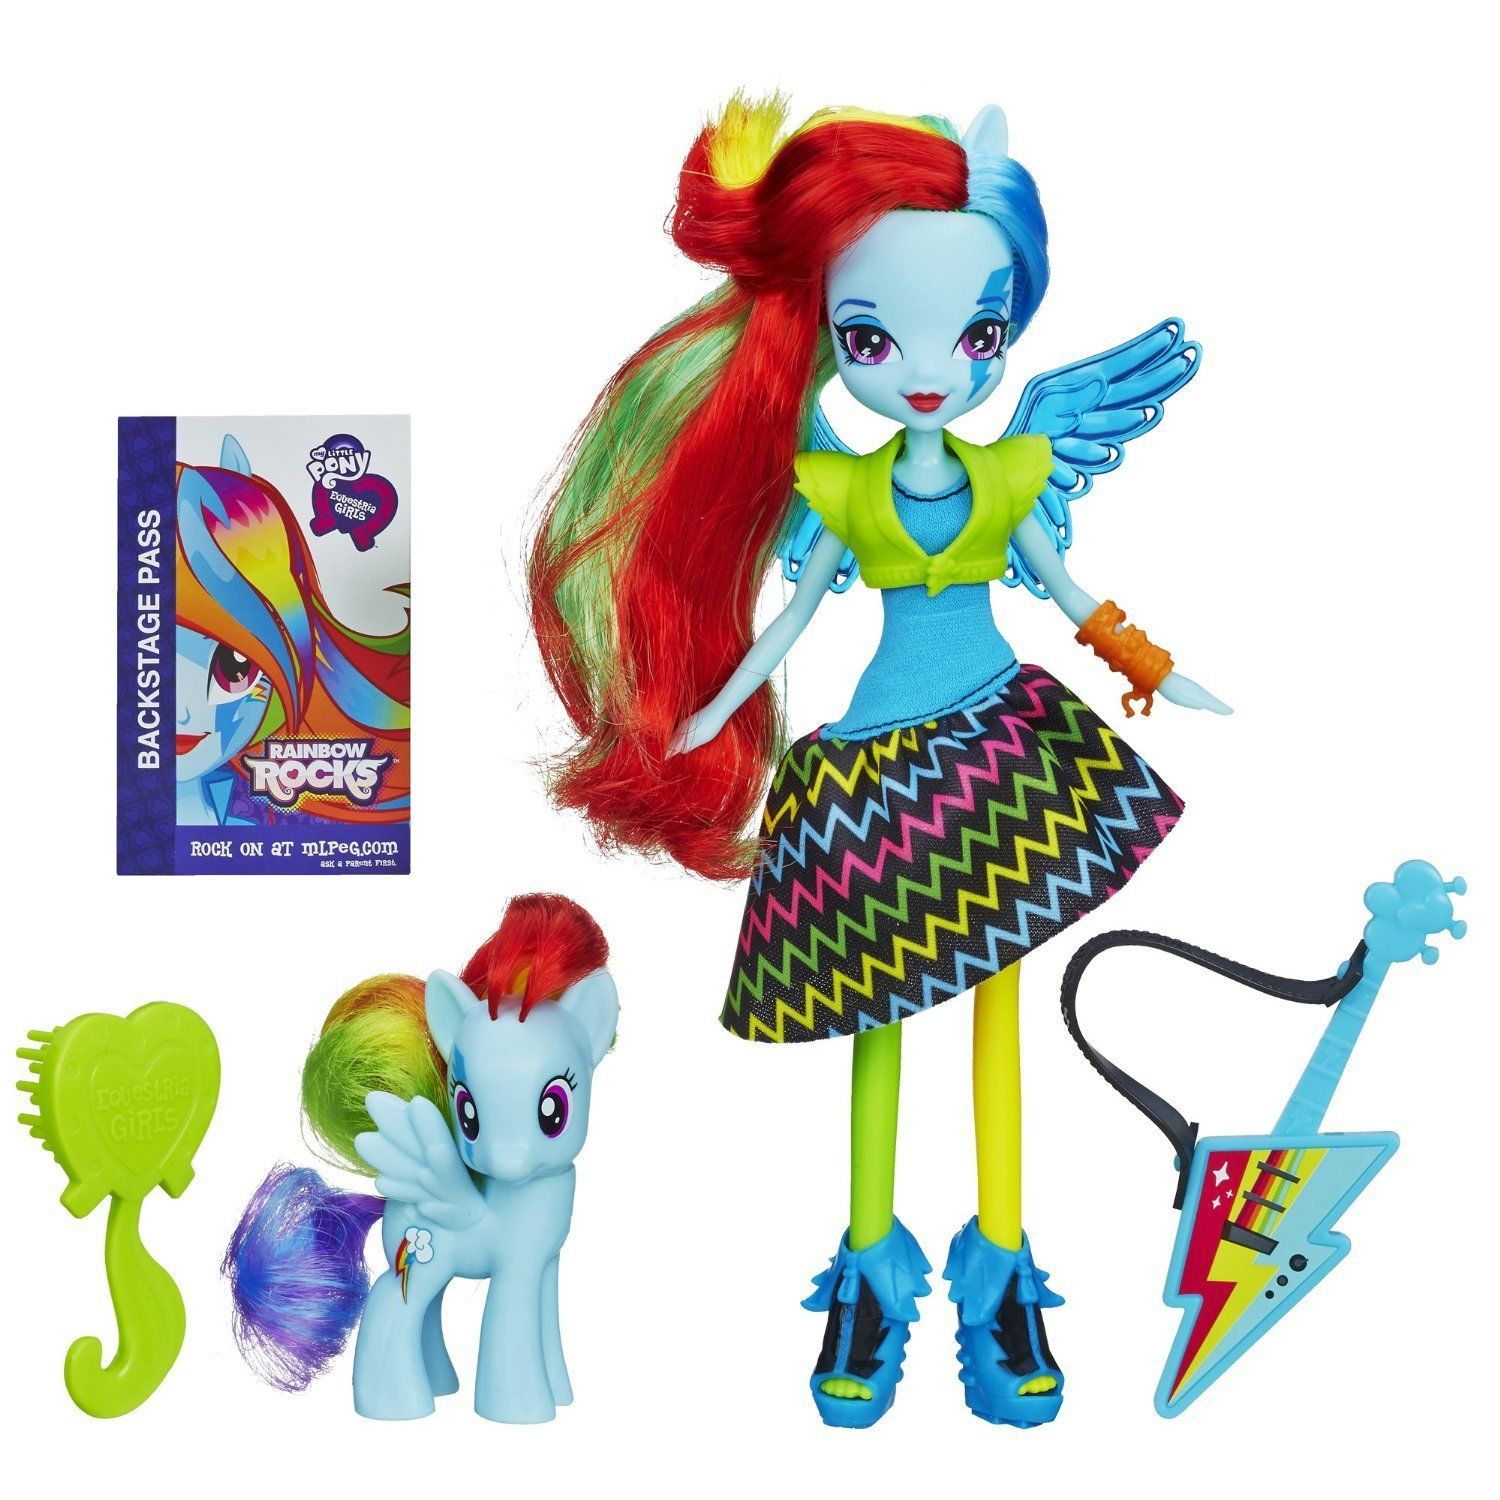 Image 1 of My Little Pony Equestria Girls Rainbow Dash Doll and Pony Set by My Little Pony